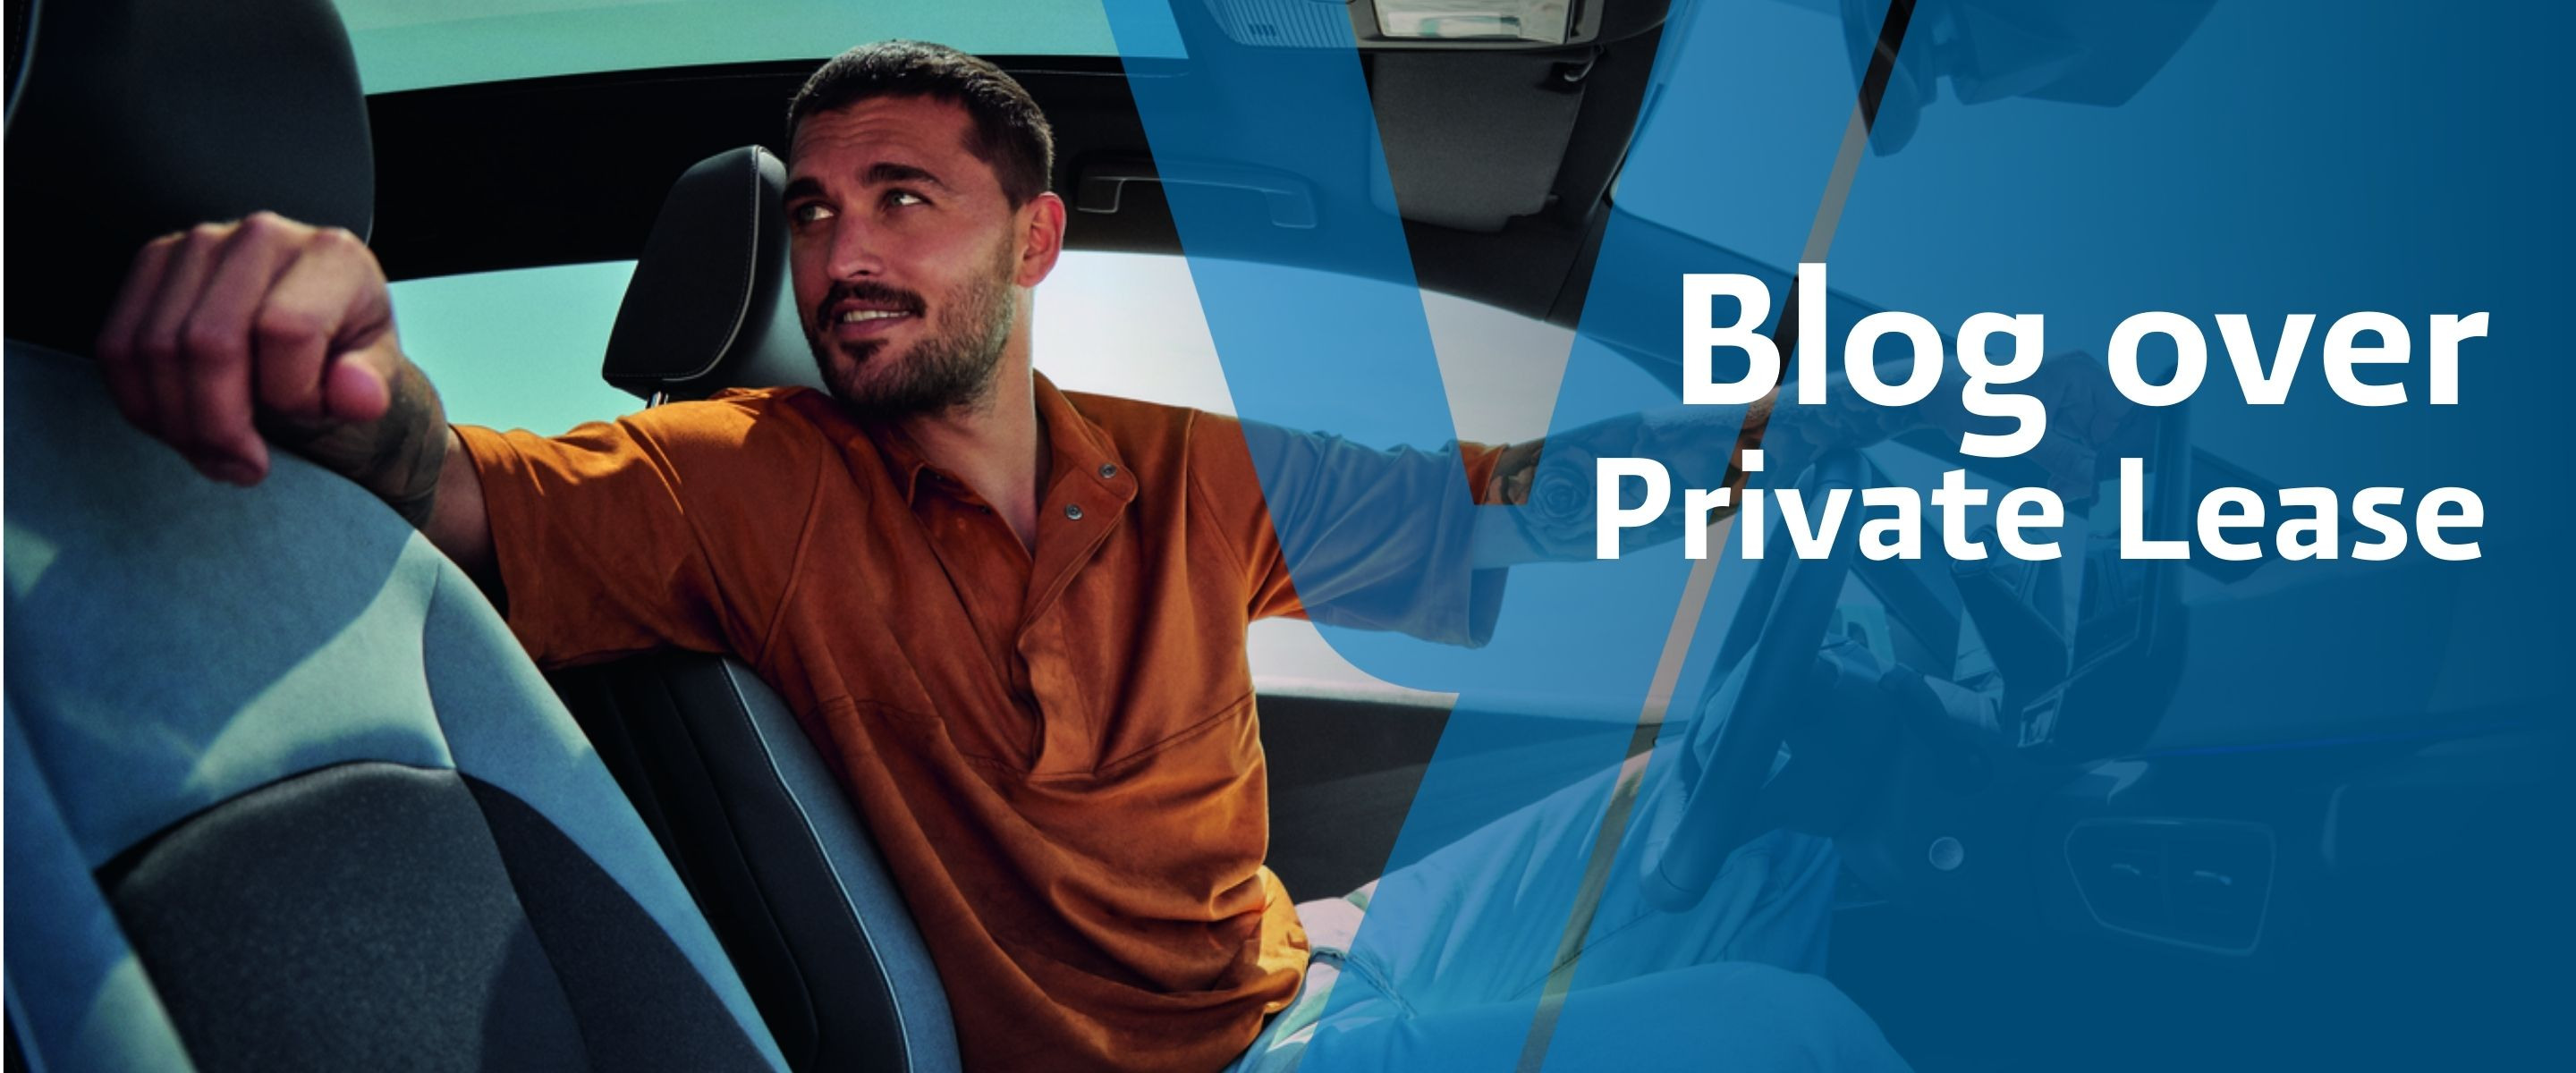 Blog over Private Lease